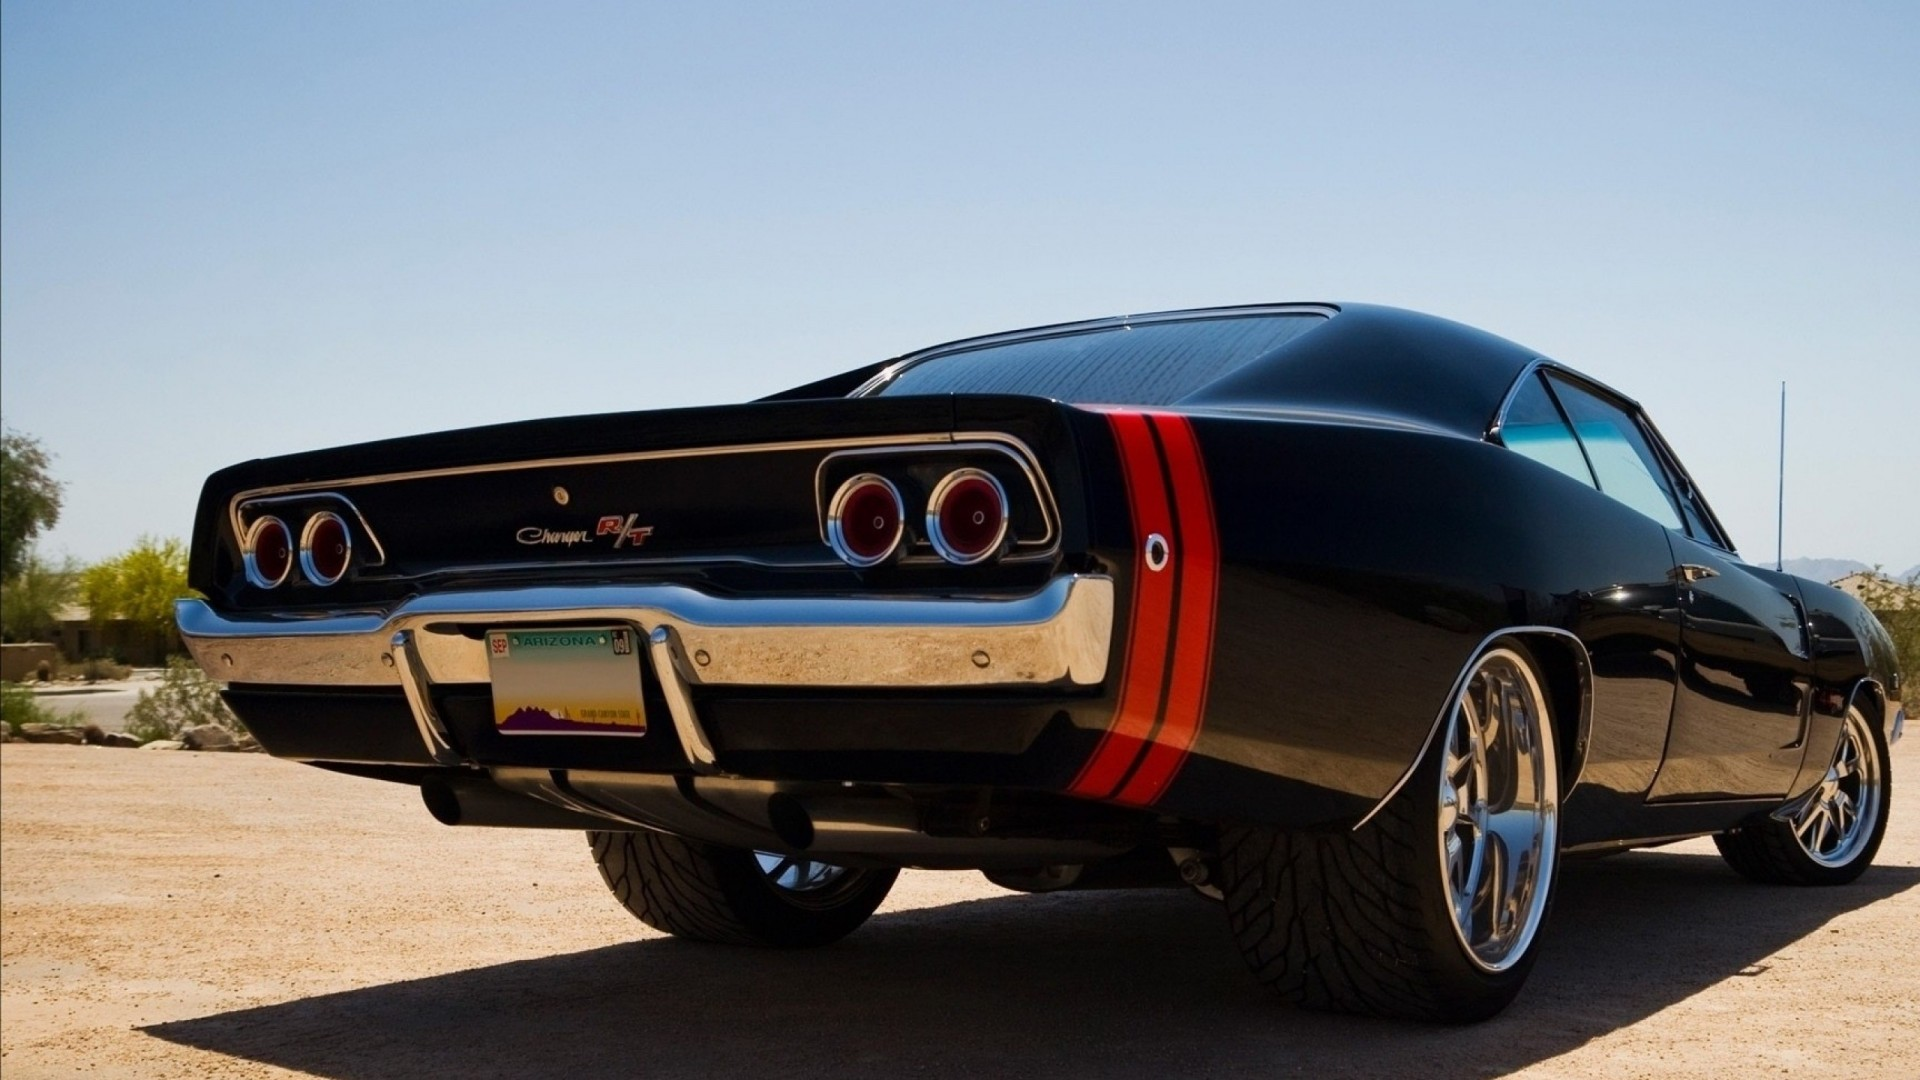 Old muscle Cars Dodge Charger Wallpaper   MixHD wallpapers 1920x1080